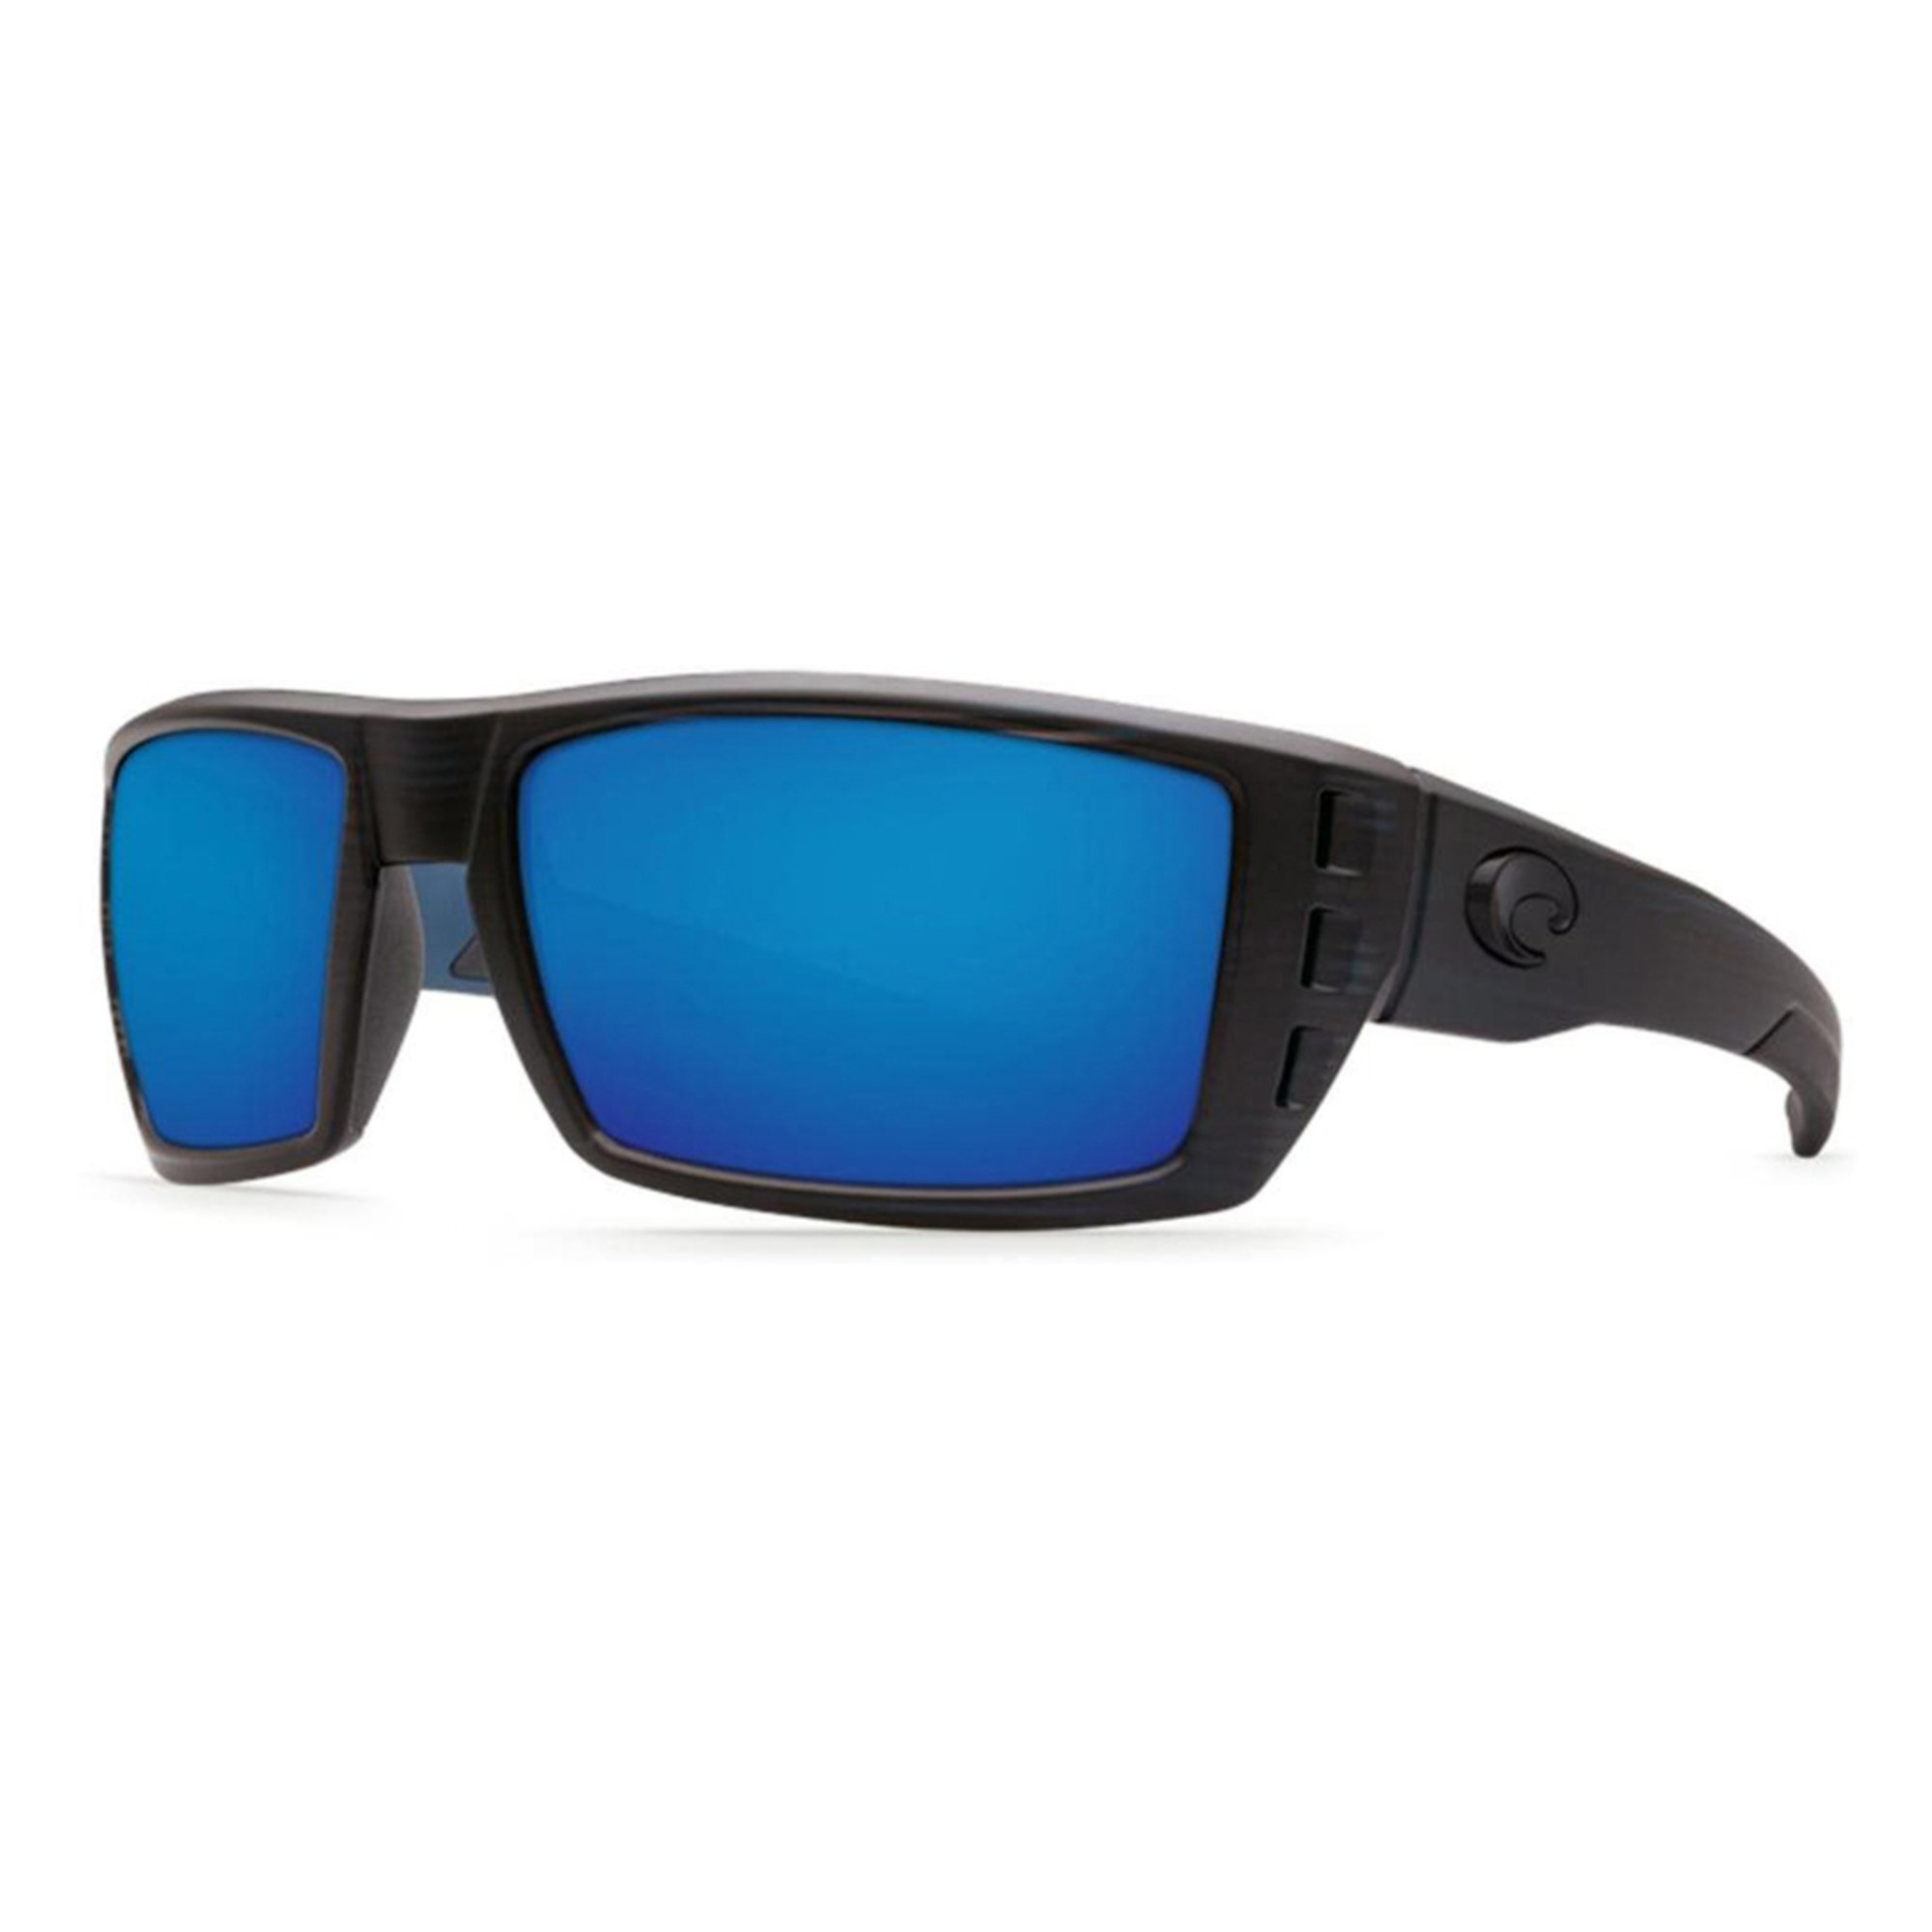 ef225de3cf15 Costa Del Mar Men s Polarized Rafael Sunglasses